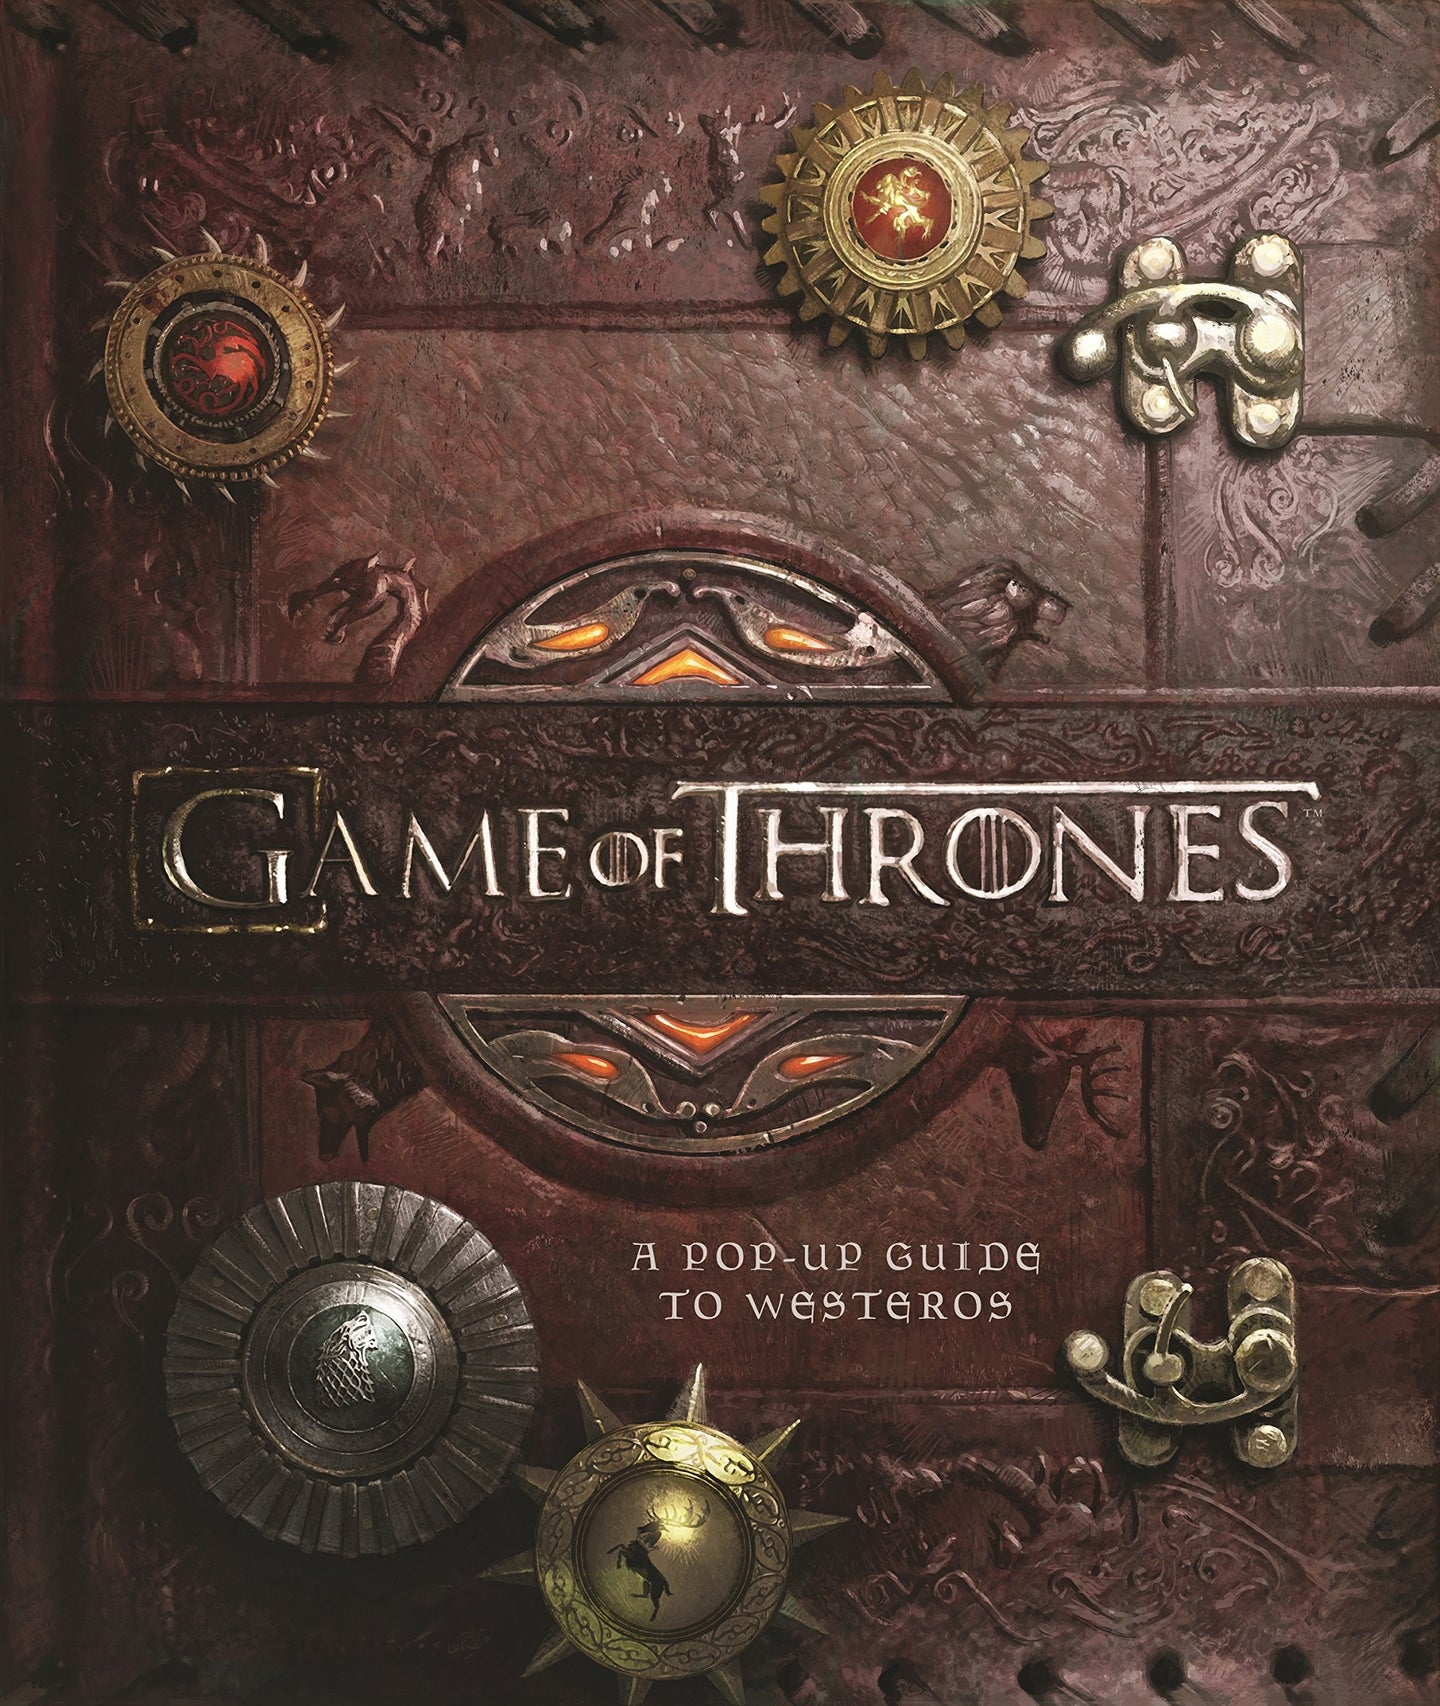 Juego de Tronos Libro pop-up 3D A Pop-Up Guide to Westeros (ed. ingles)